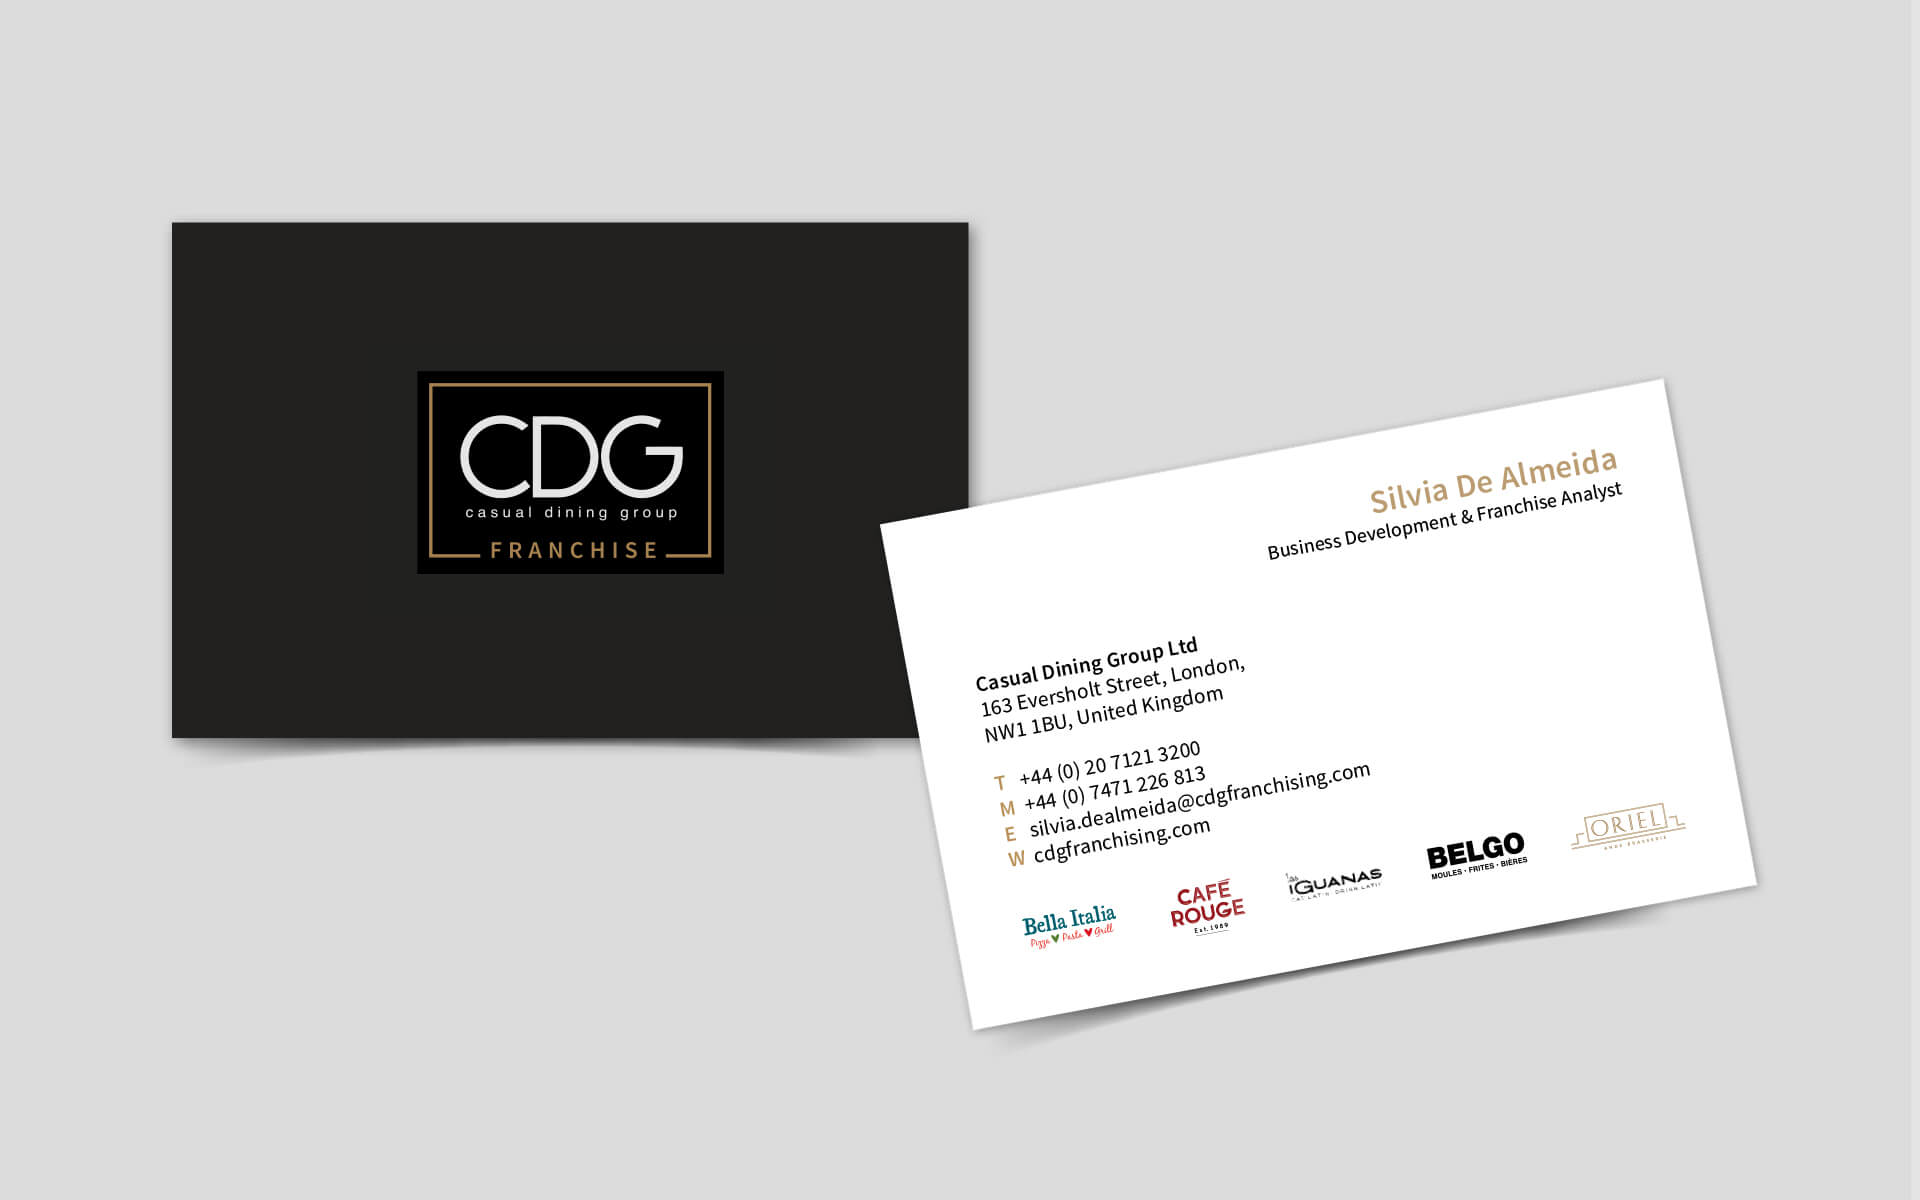 CDG franchise business card